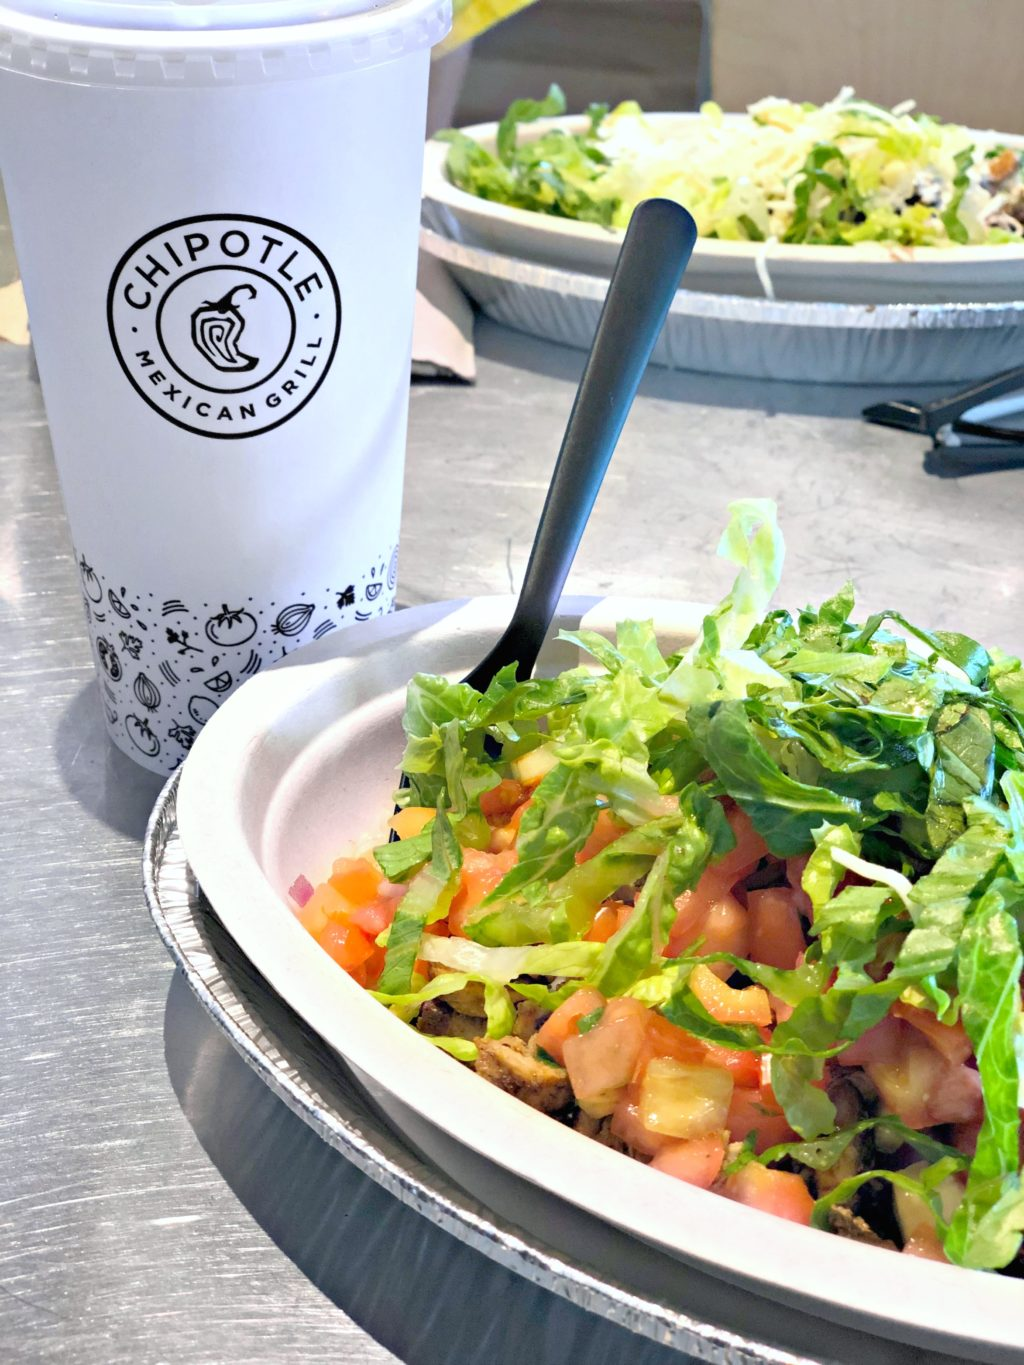 Chicken Bowl at Chipotle Mexican Grill, drink and another bowl is shown.